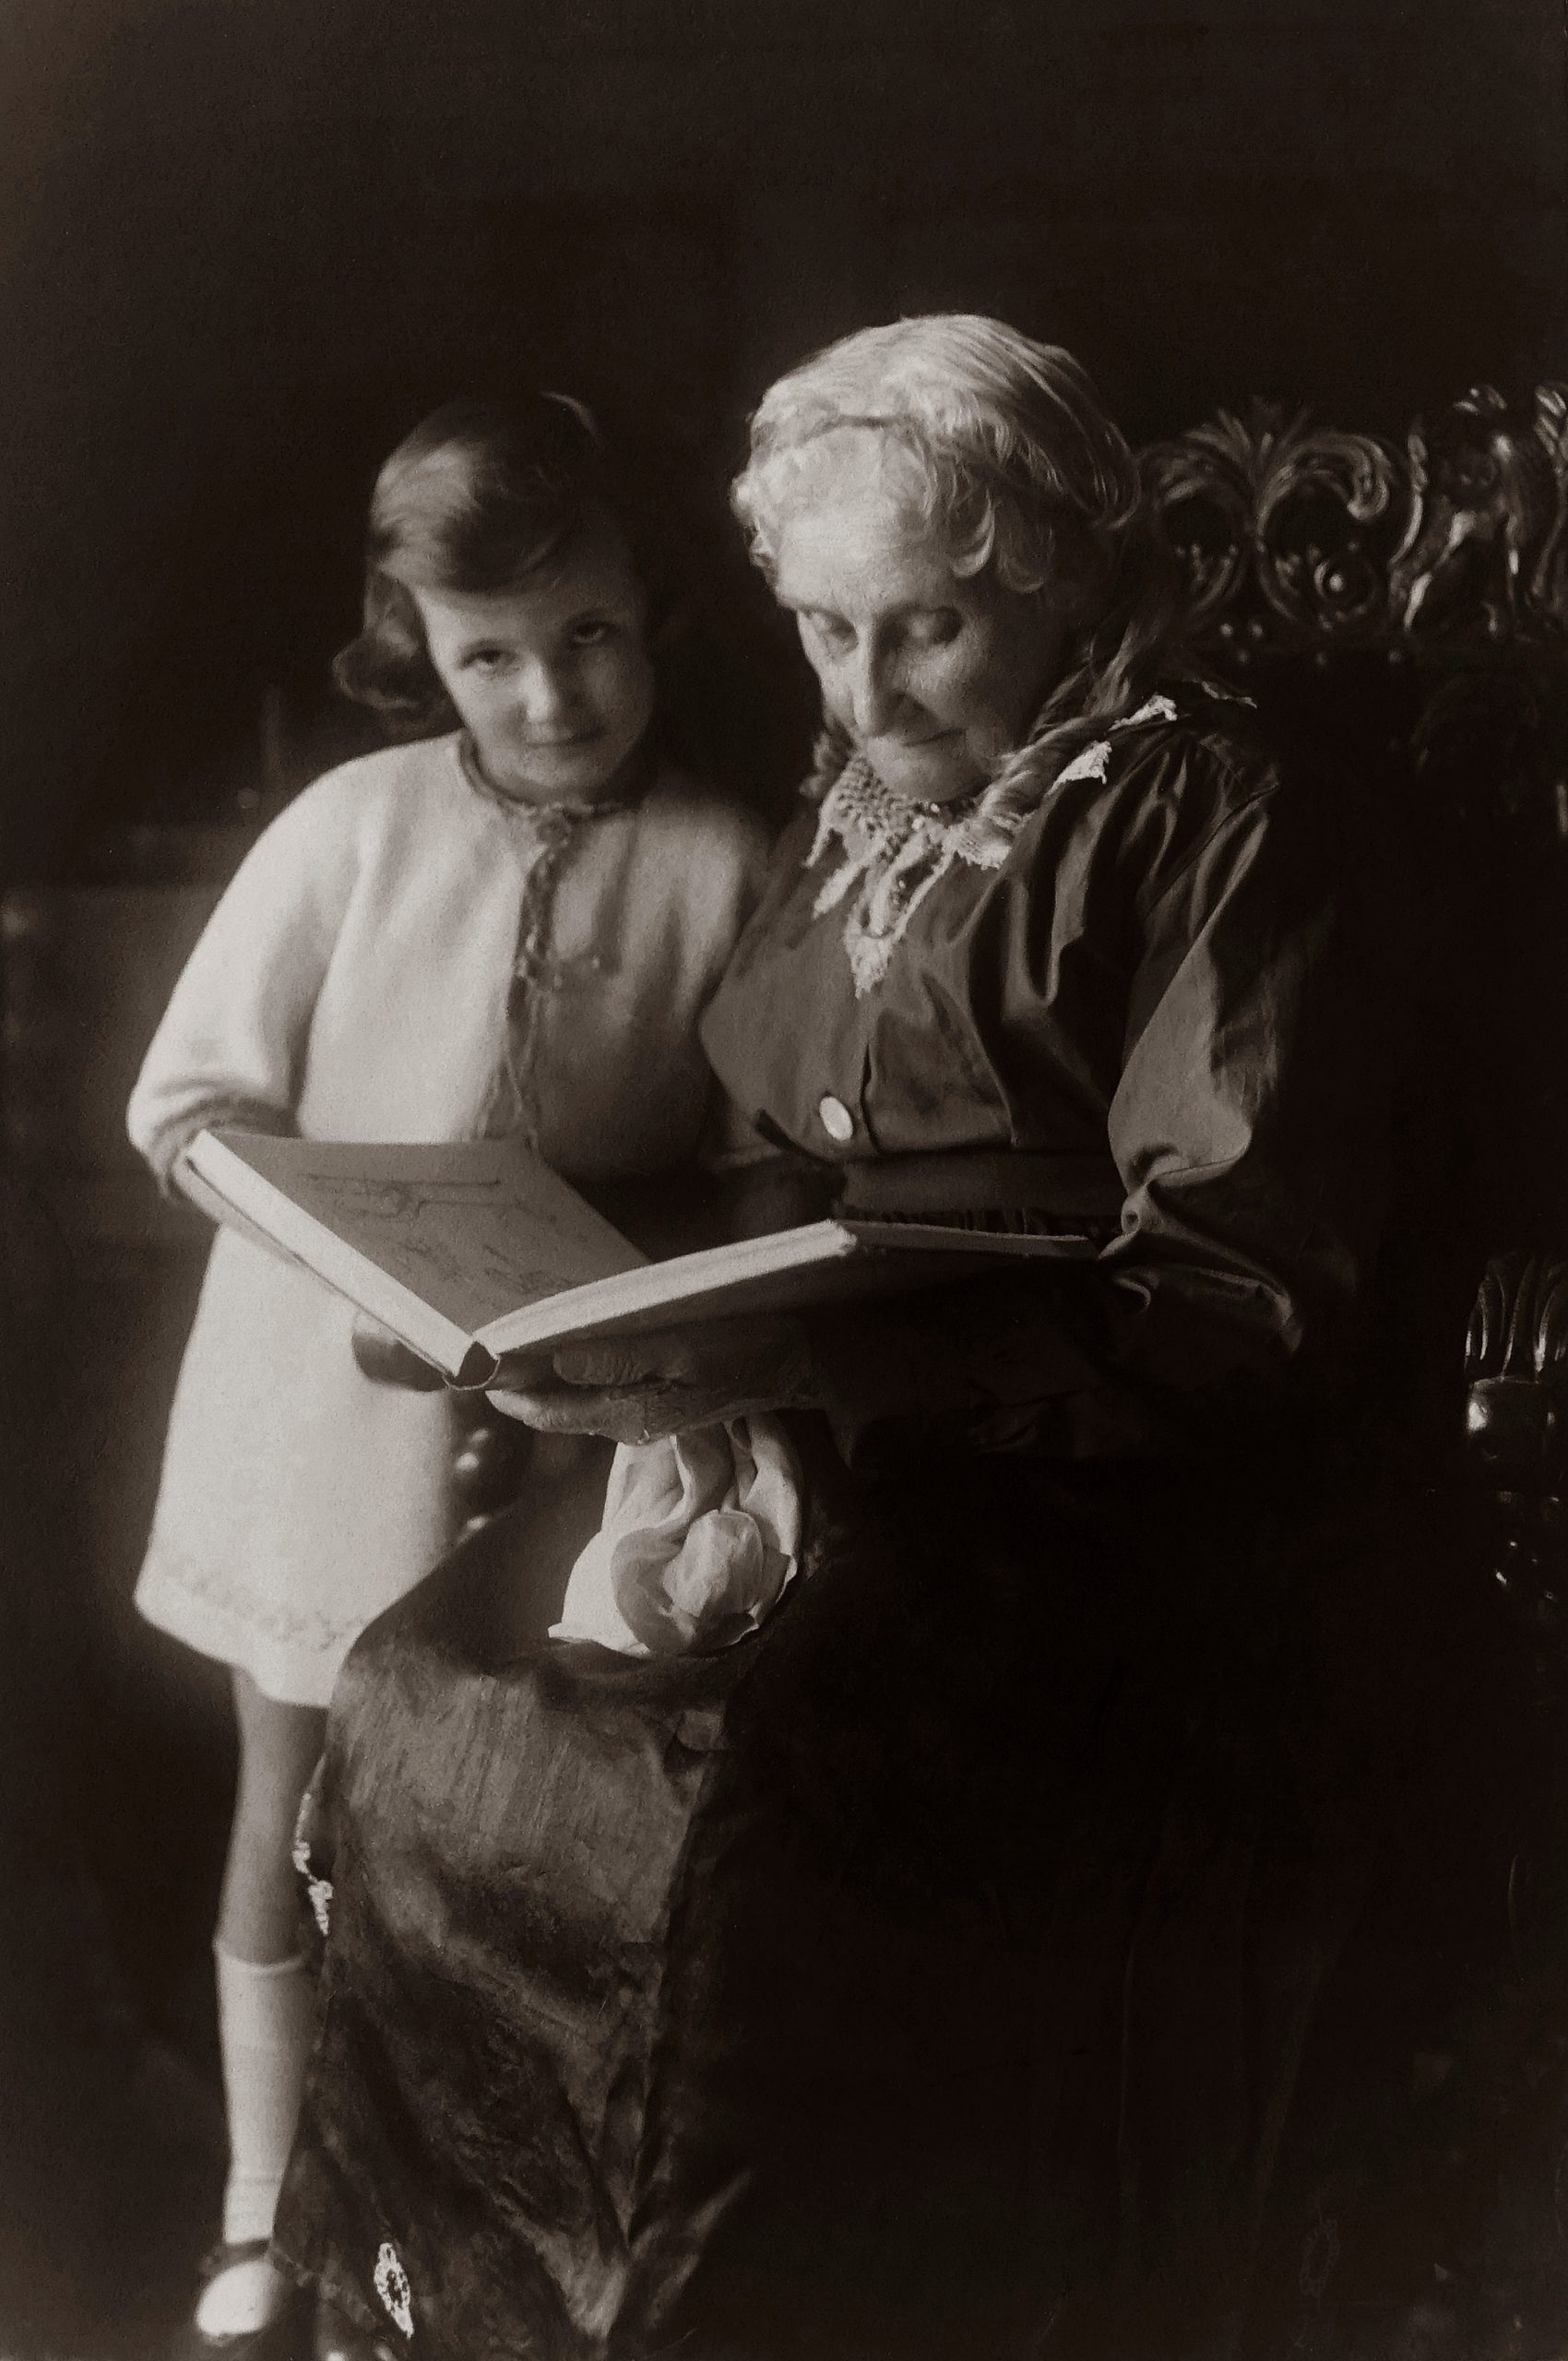 old-woman-sitting-on-chair-near-girl-while-reading-a-book-3087878